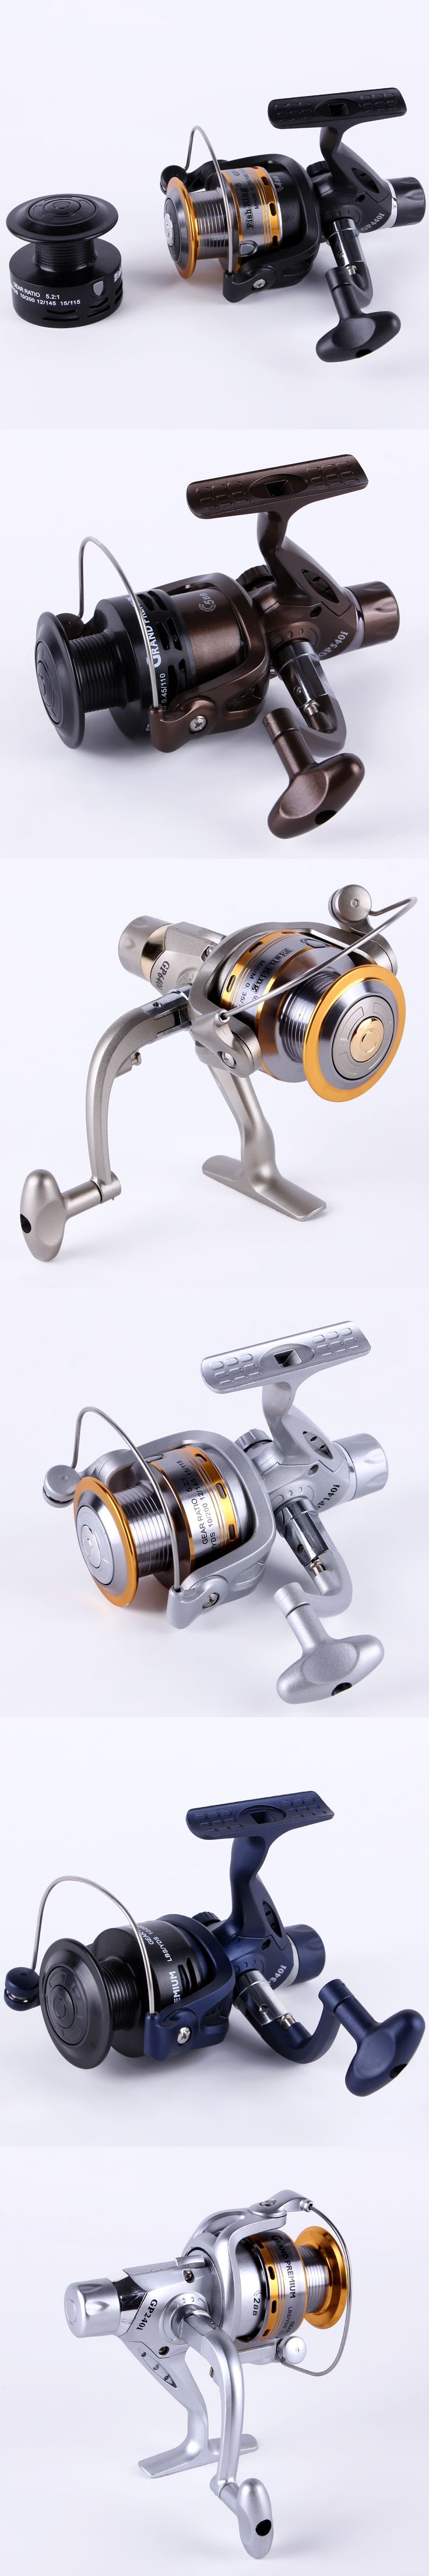 FISH KING Spinning Reel Fishing Reel Series Boat Rock Carp Fishing Wheel Aluminum Spool